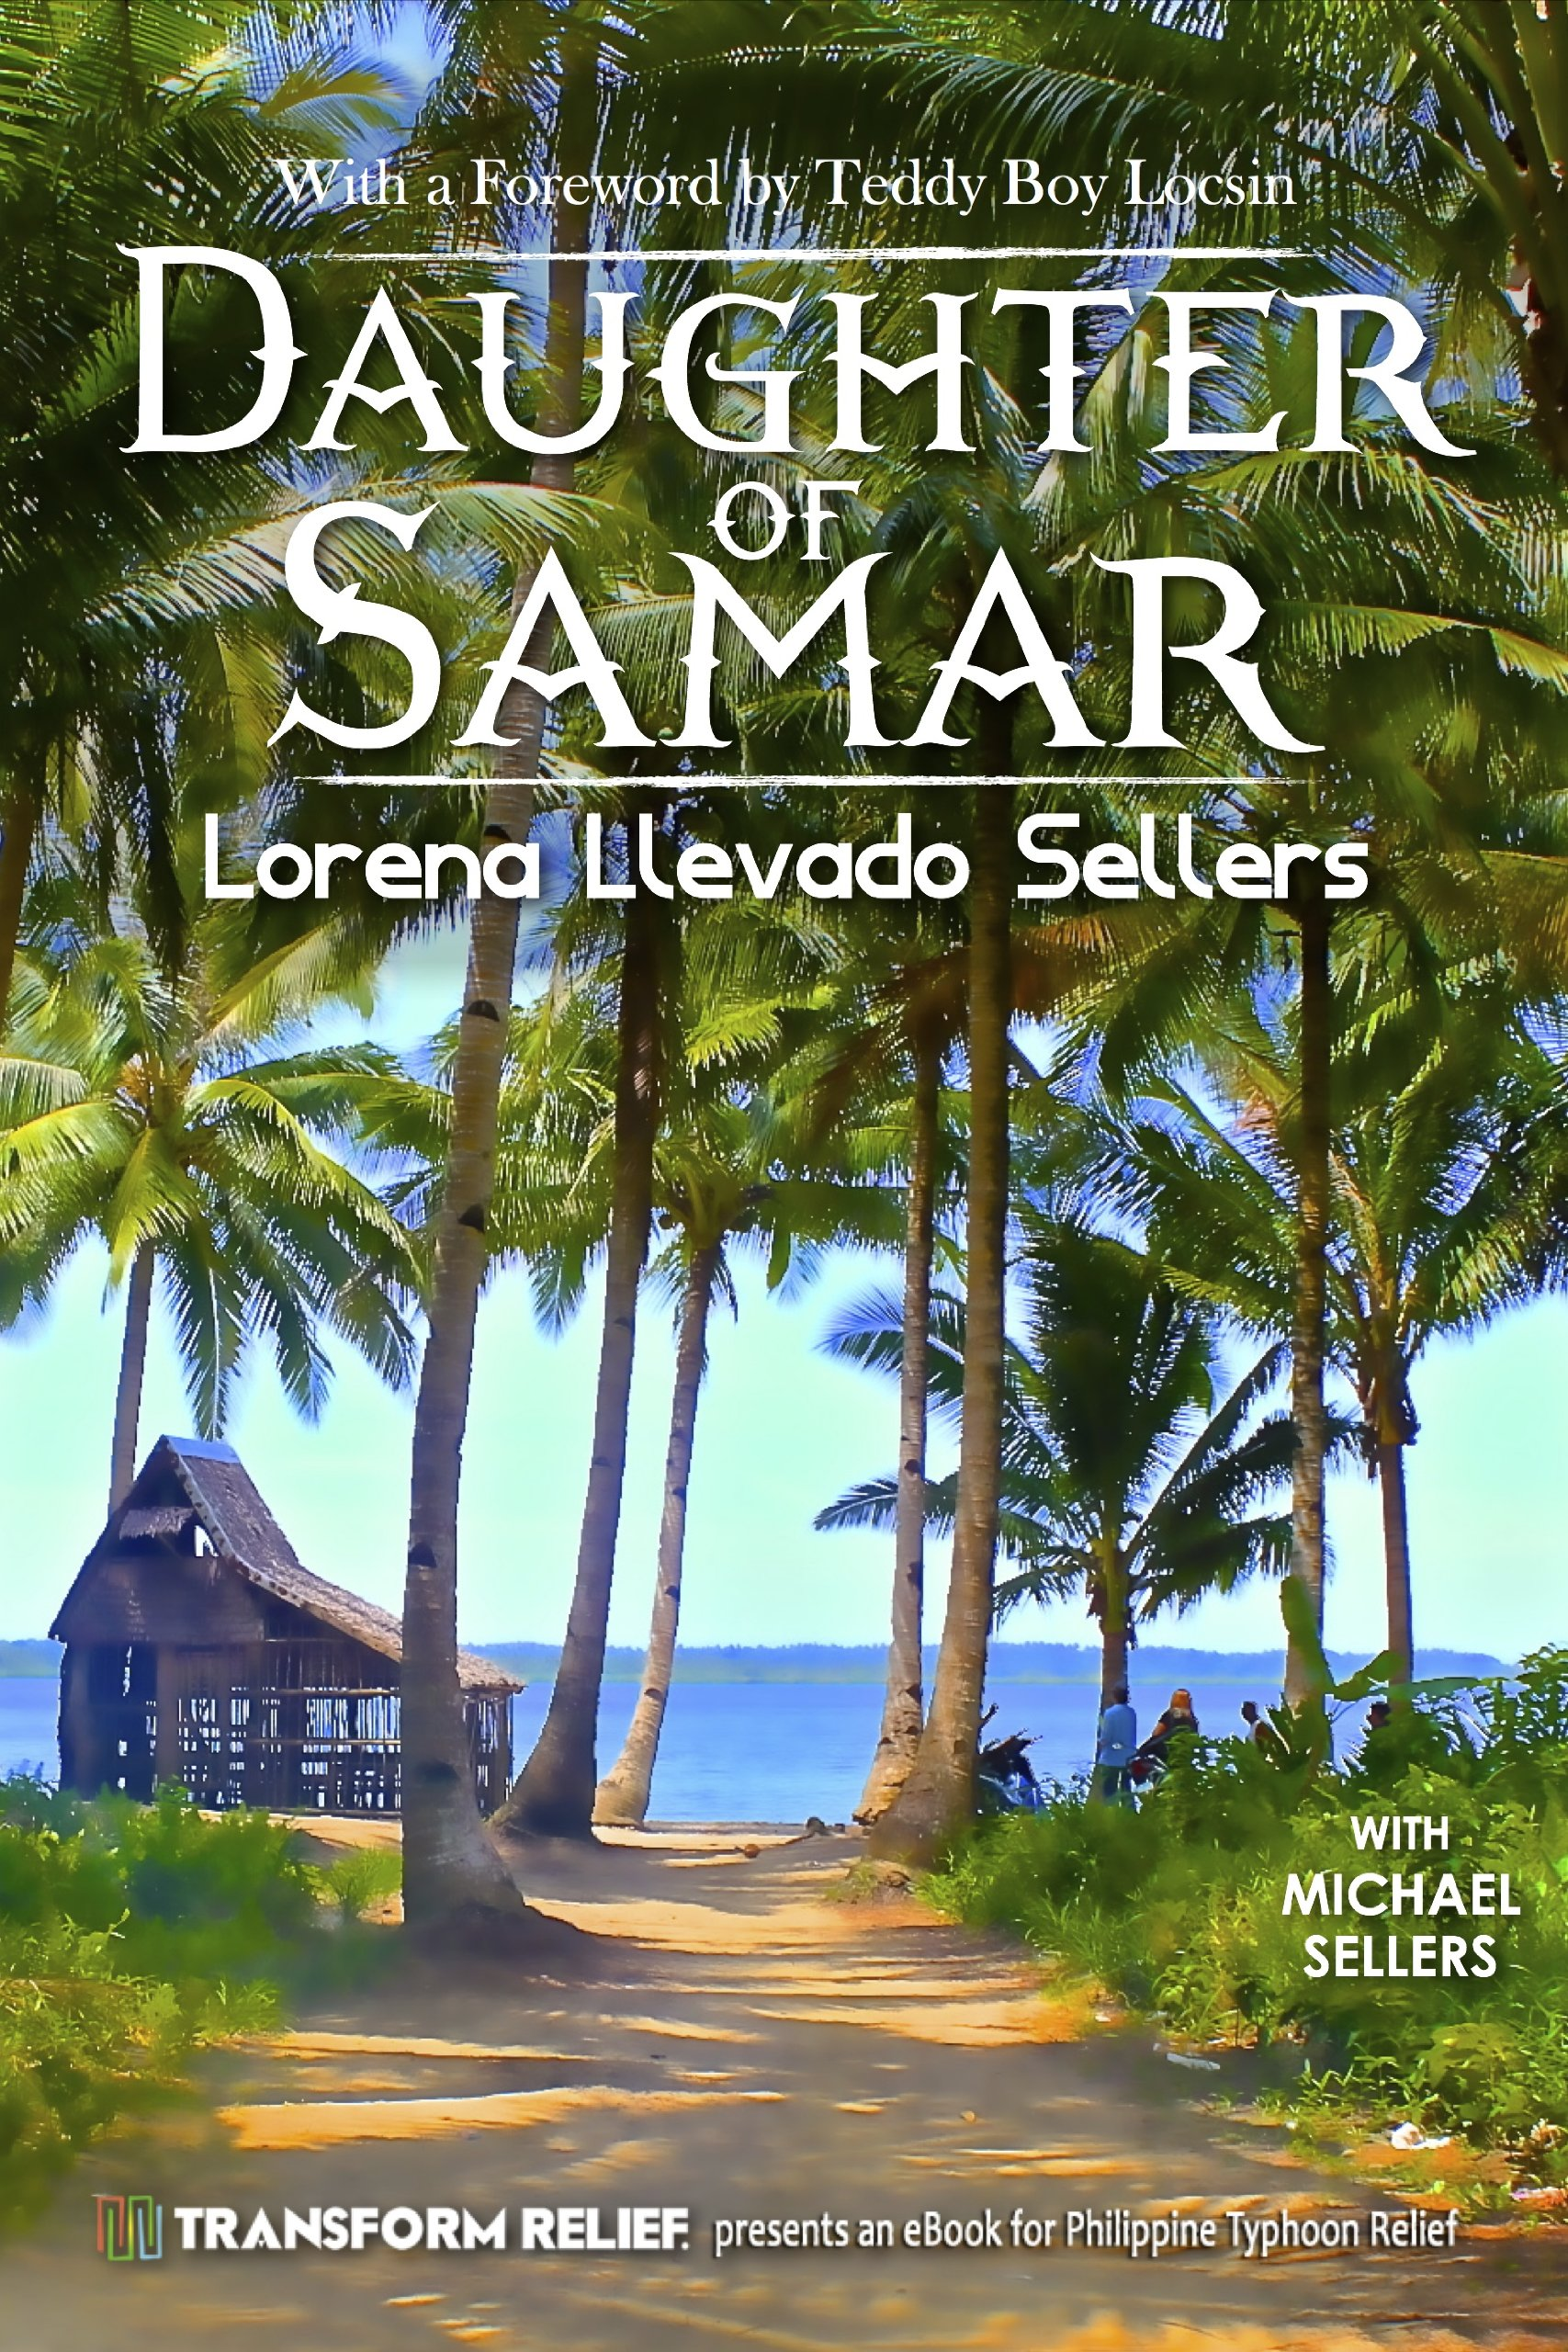 Daughter of Samar — Now Available to Read Online